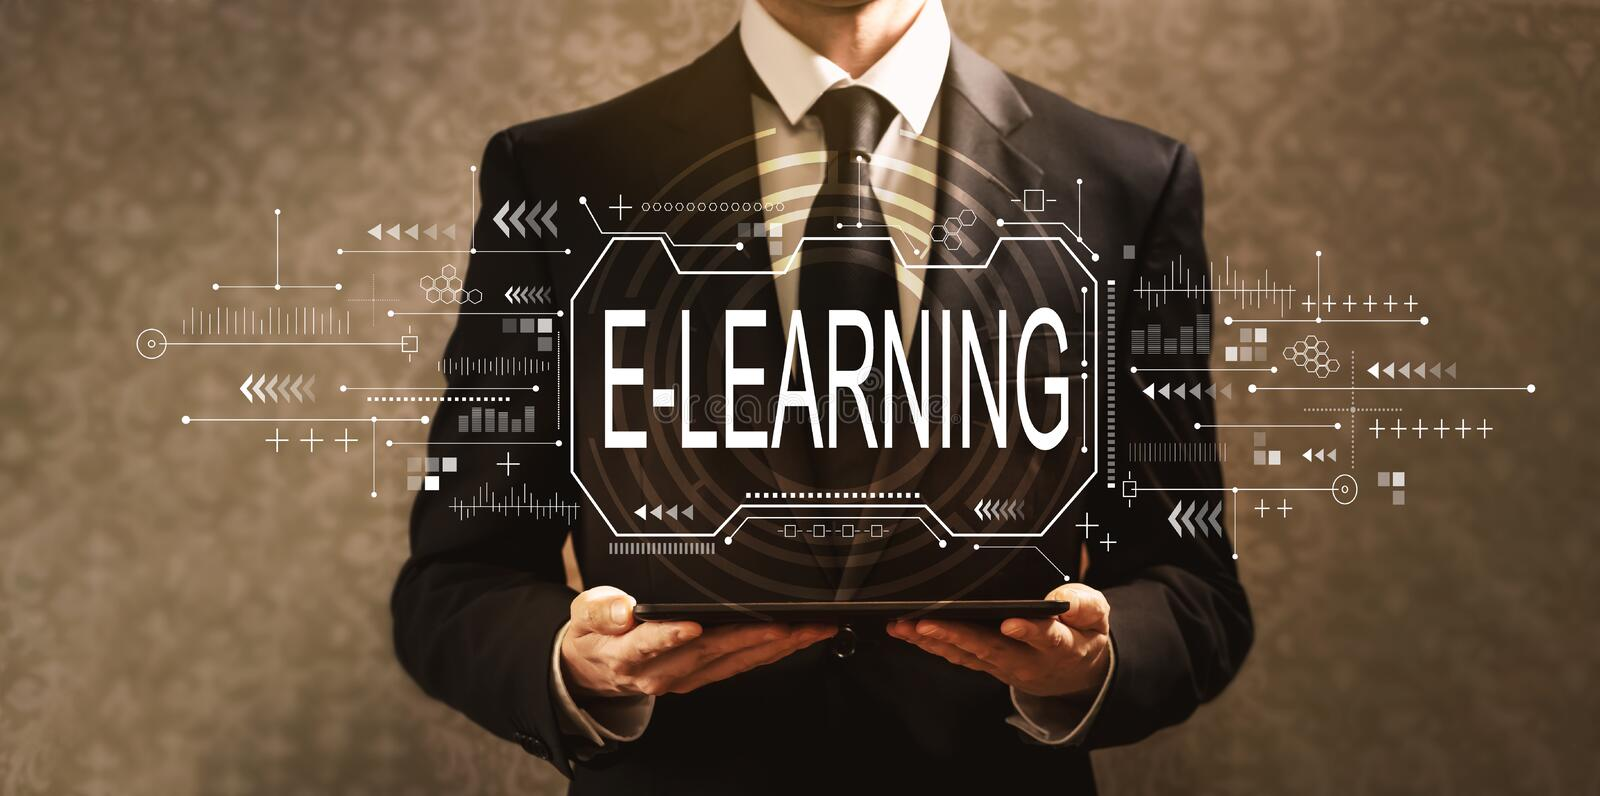 E-learning concept with businessman royalty free stock photos